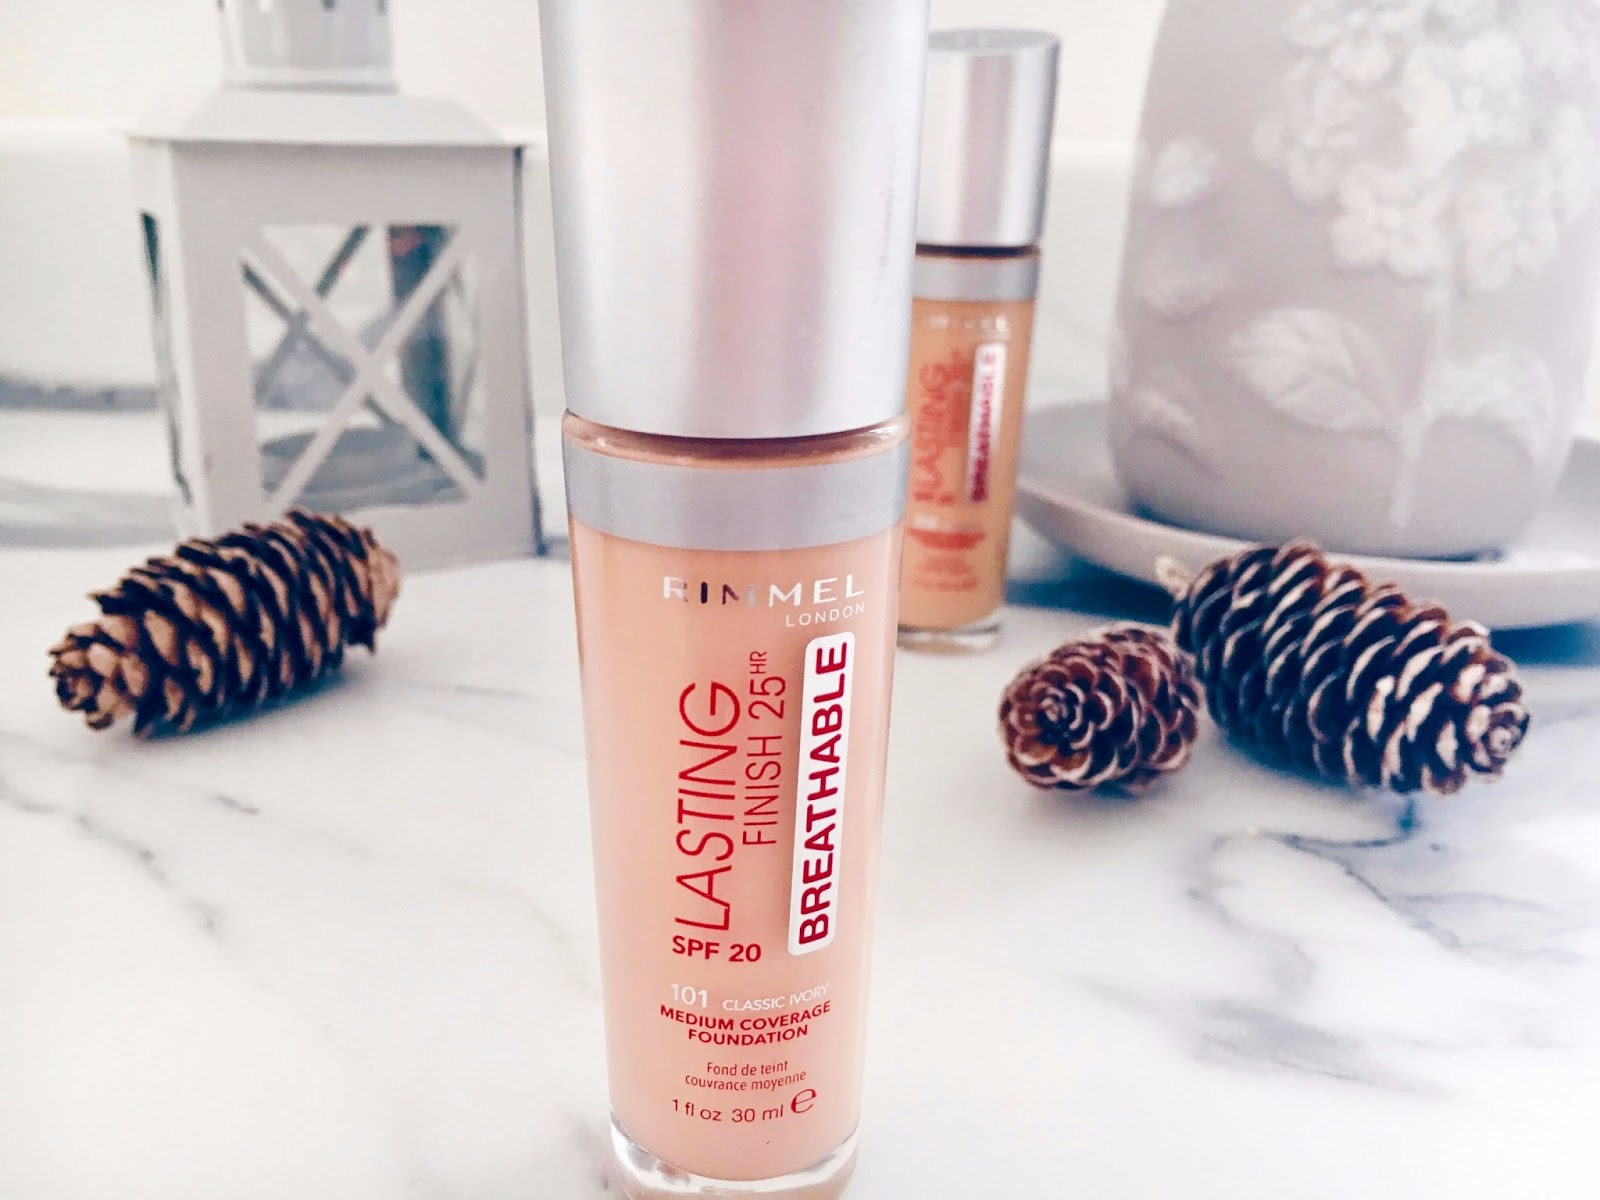 Rimmel Lasting Finish Breathable Foundation - My Holy Grail Base Review